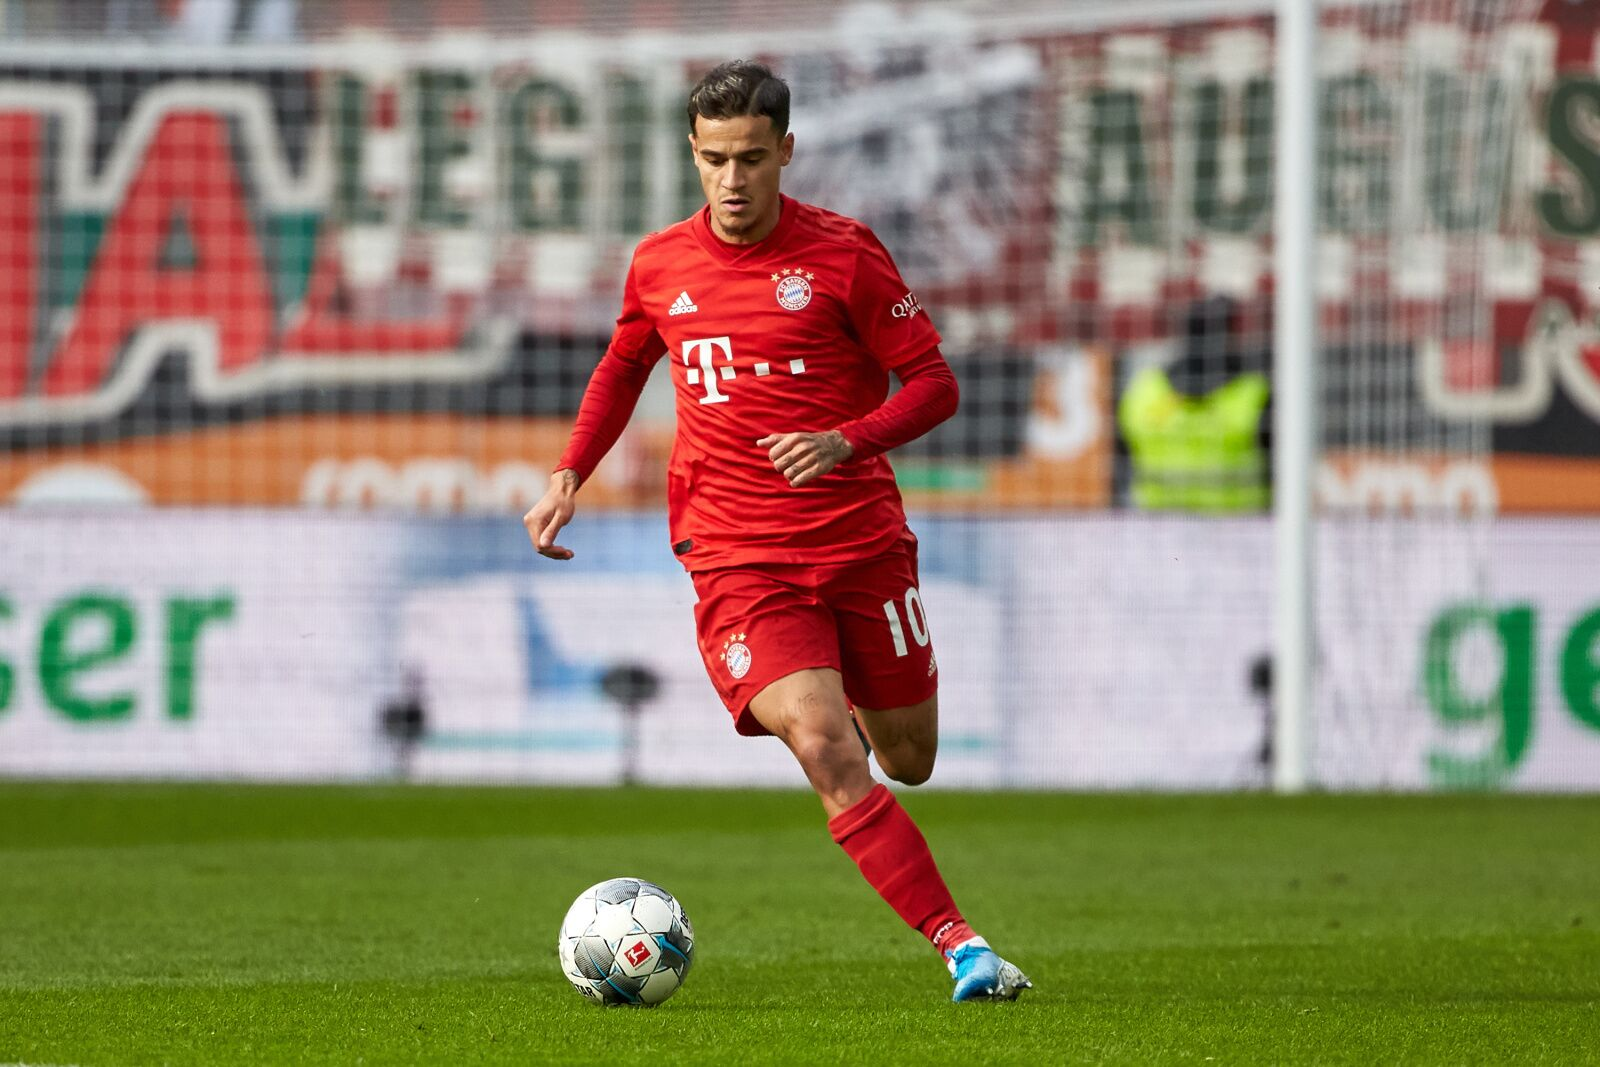 Bayern Munich pleased with Philippe Coutinho's performances